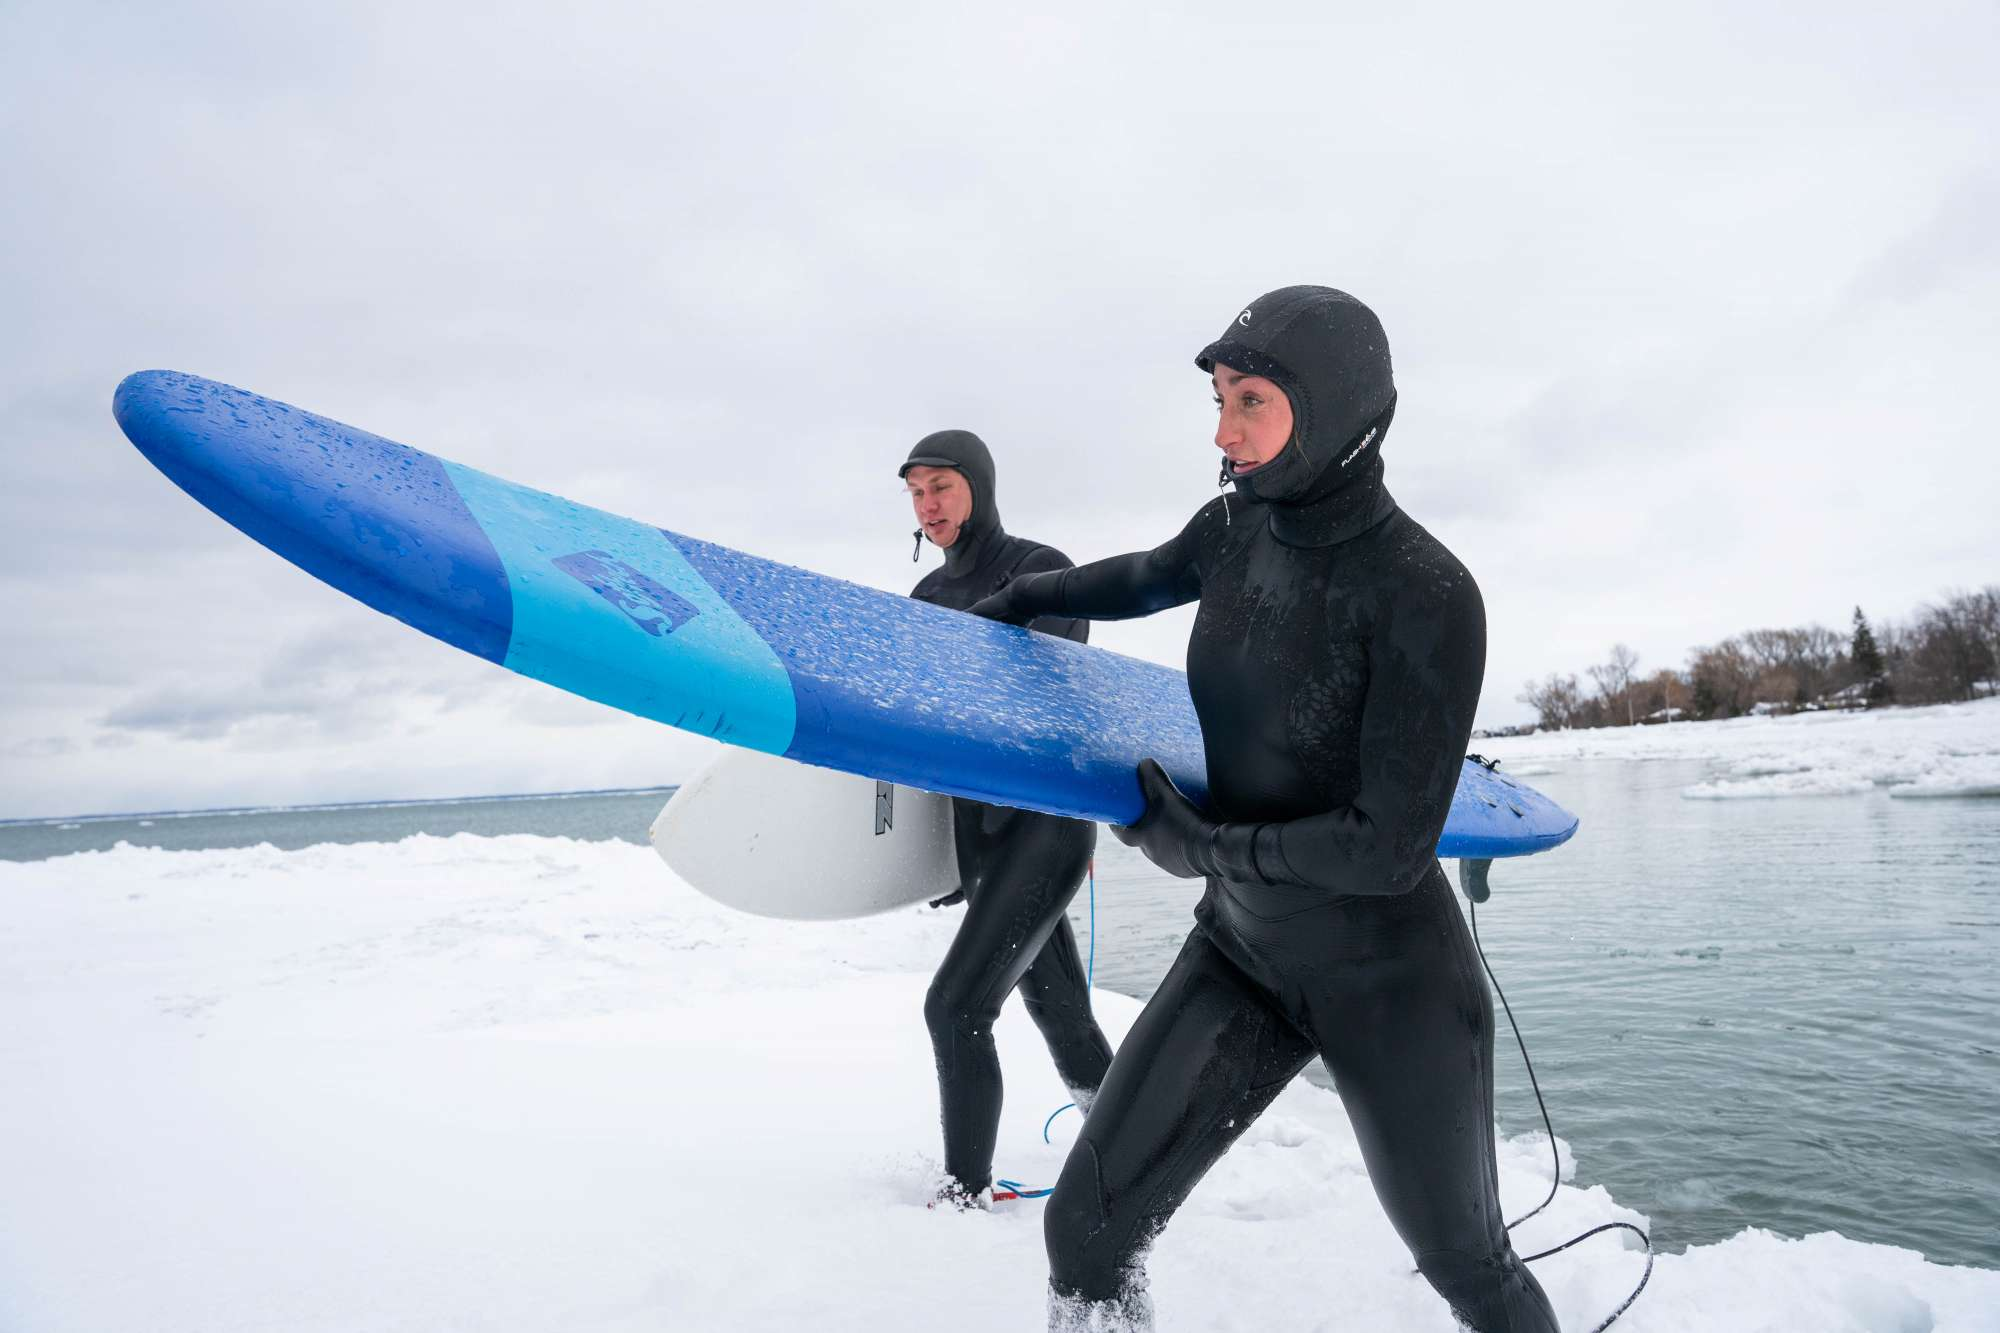 Cold water surfing